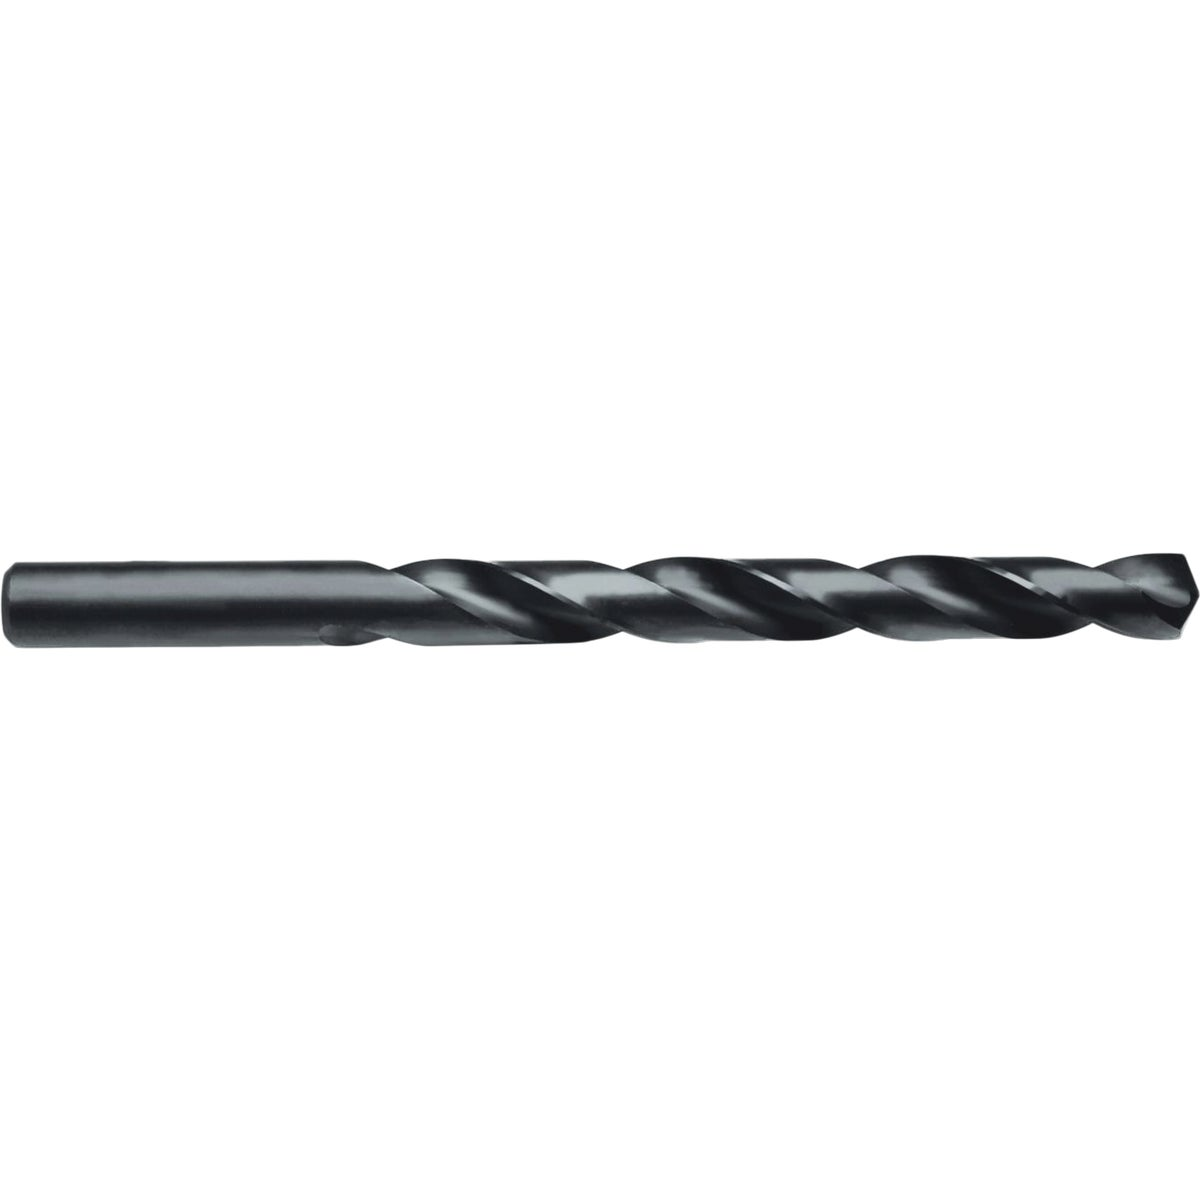 "5/64"" BLACK OXIDE BIT - DW1105 by DeWalt"